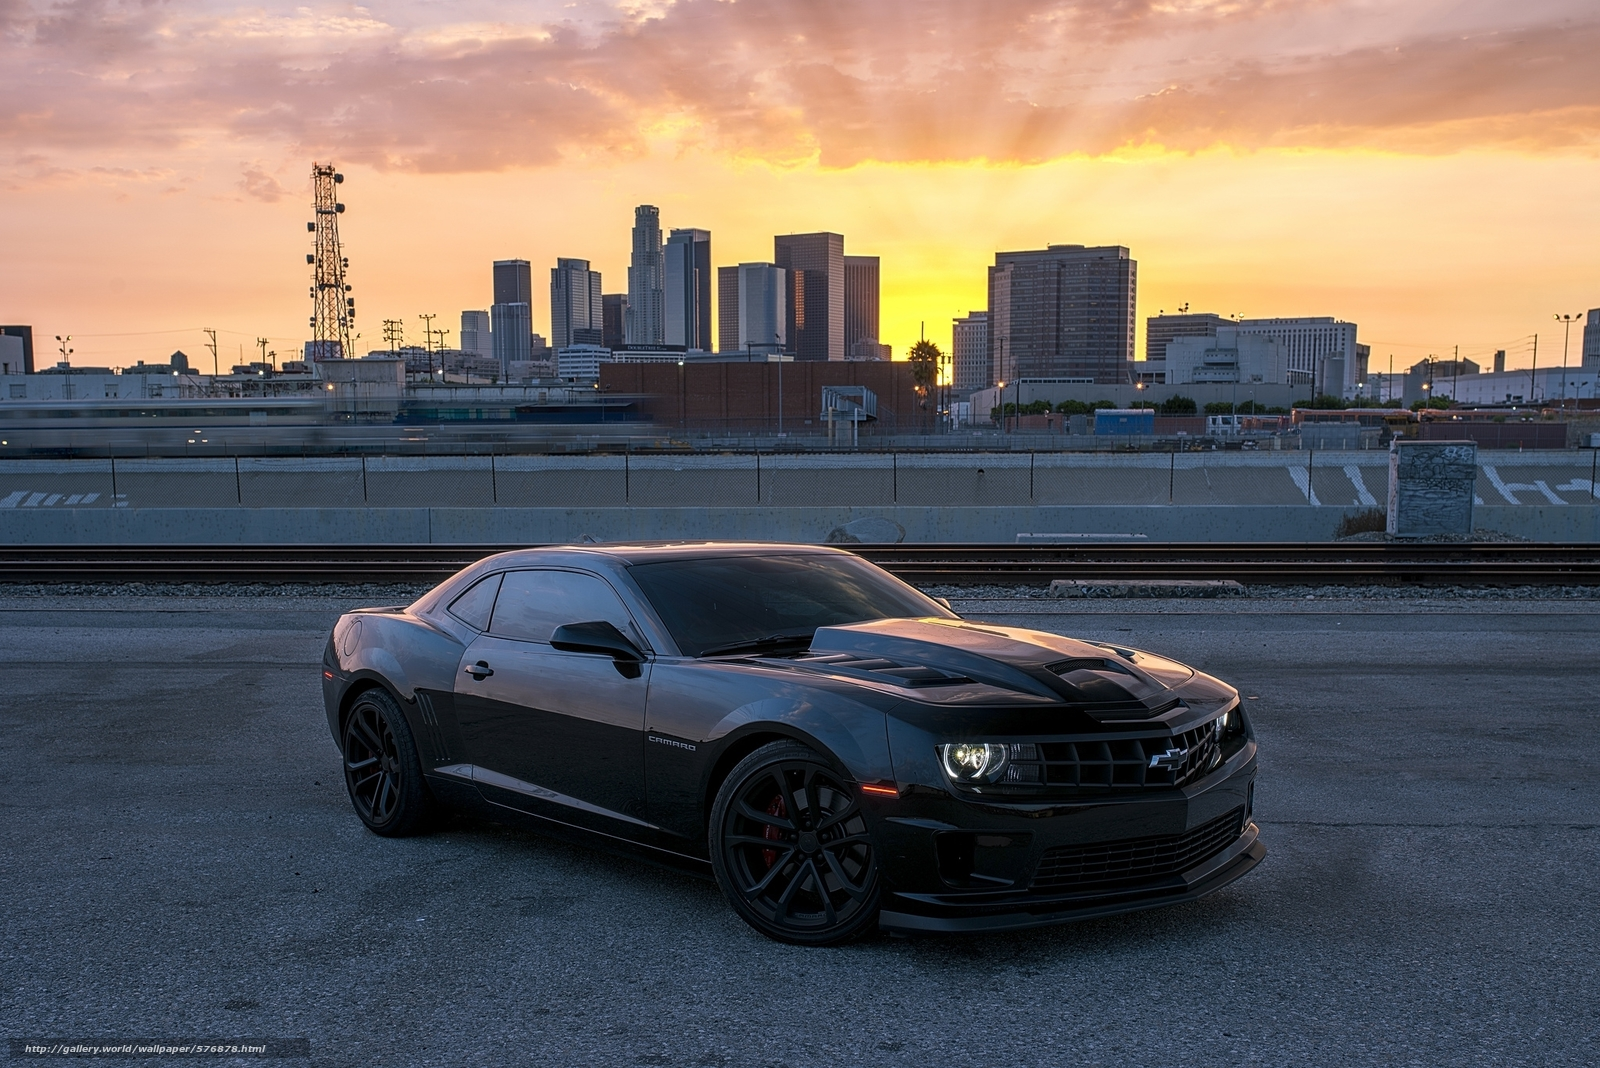 Download Wallpaper Camaro Black Chevrolet Sunset Free